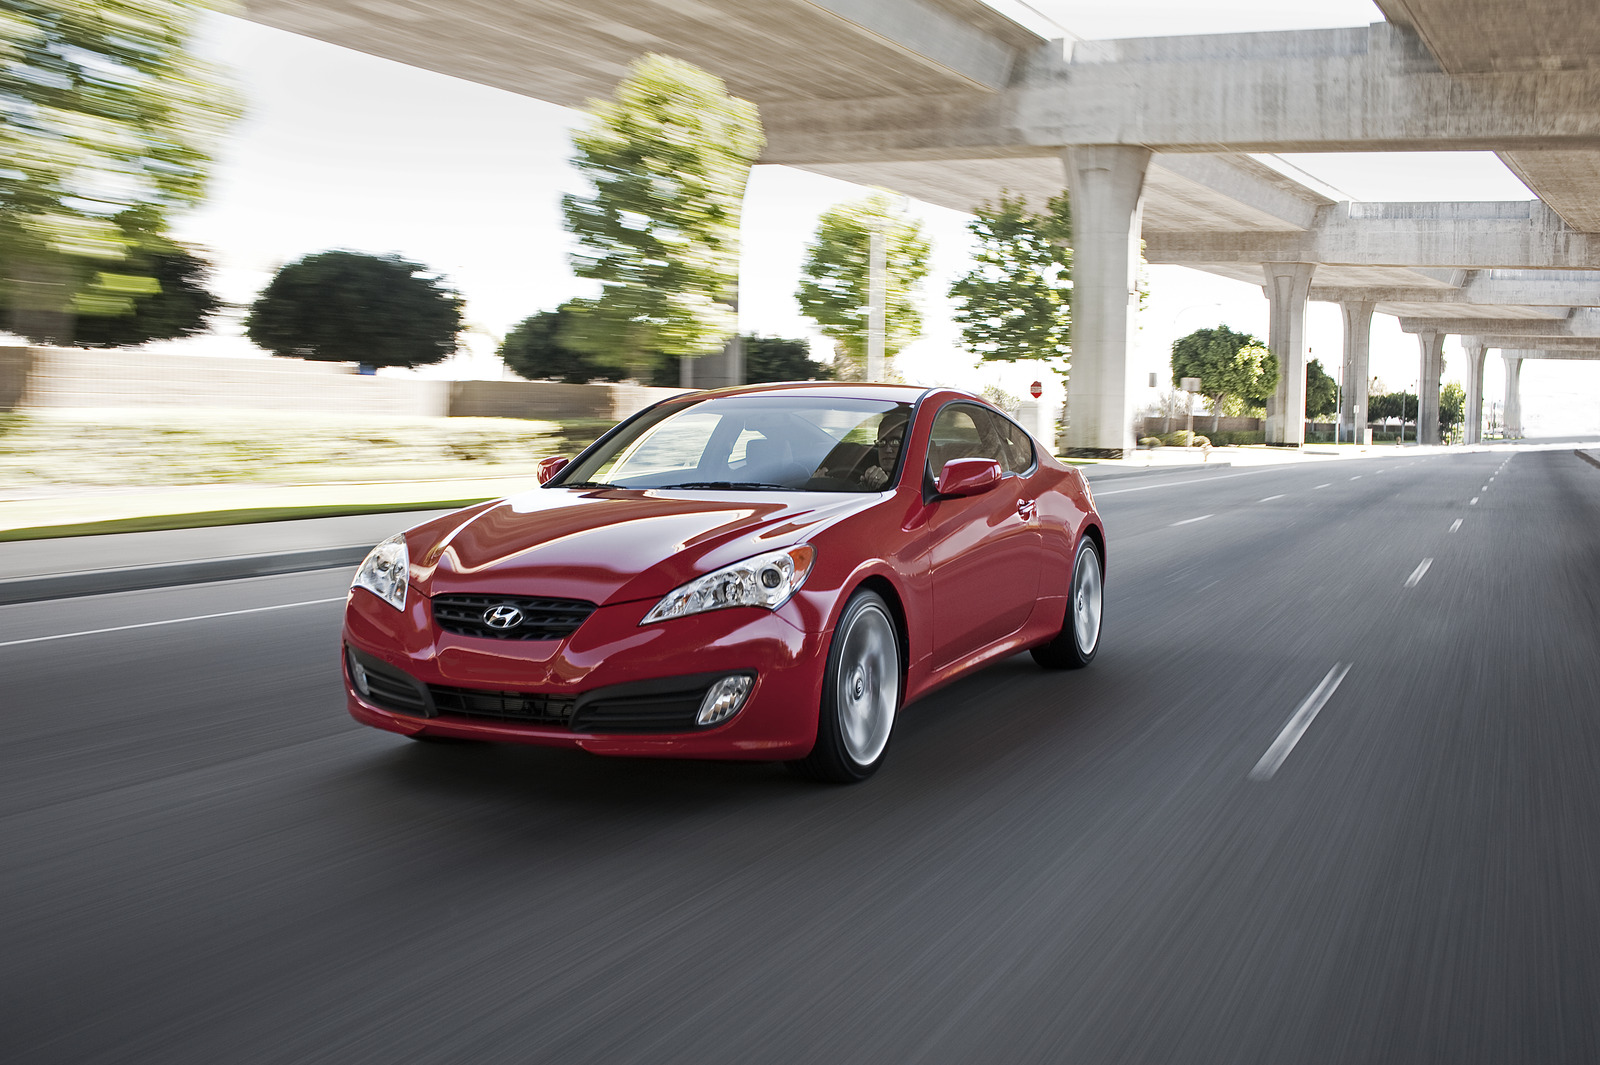 2011 hyundai genesis coupe r spec priced from 24 500. Black Bedroom Furniture Sets. Home Design Ideas